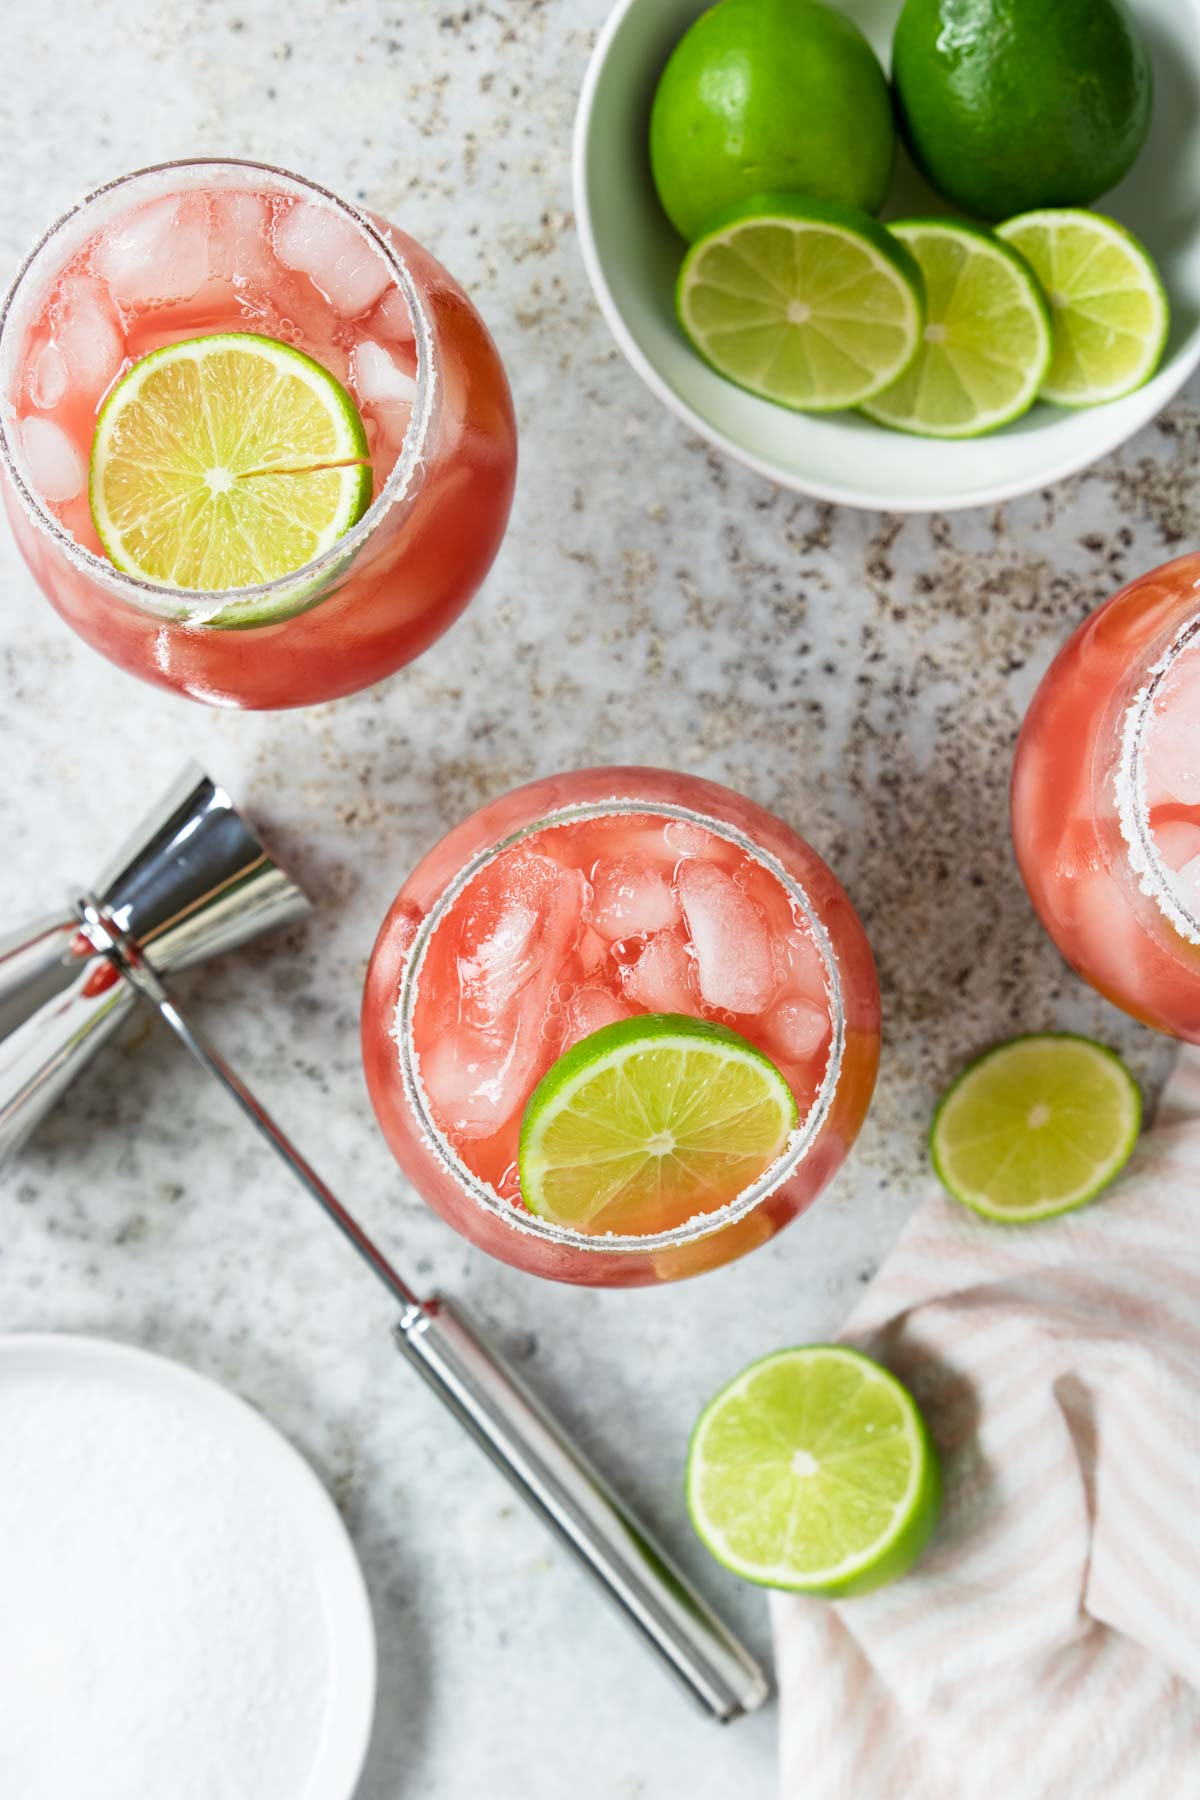 watermelon margaritas photographed from above showing the drink in the glass and a bowl of limes